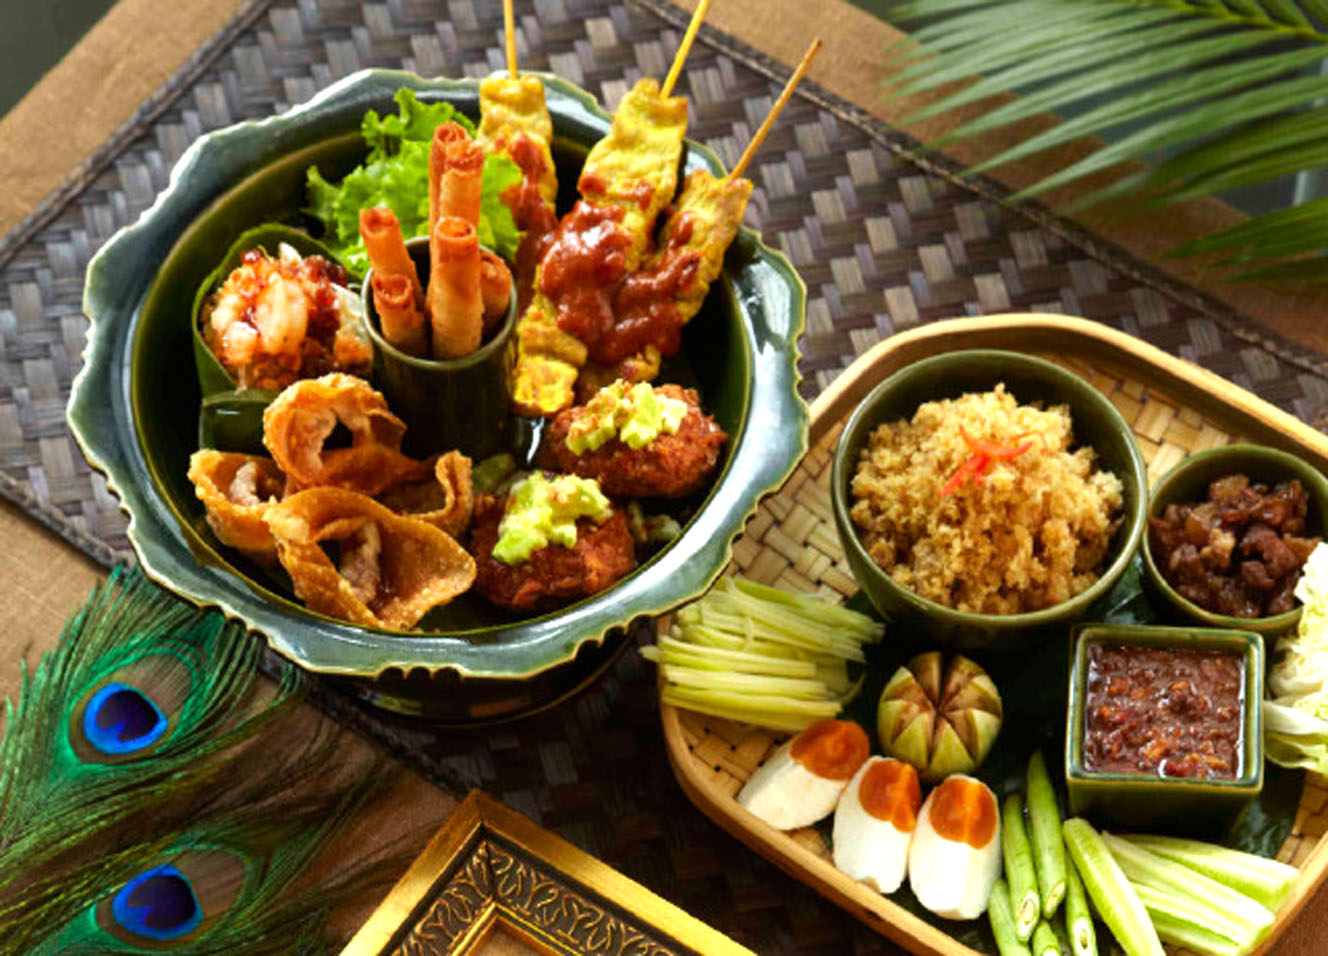 Casino espanol de cebu inc for About thai cuisine